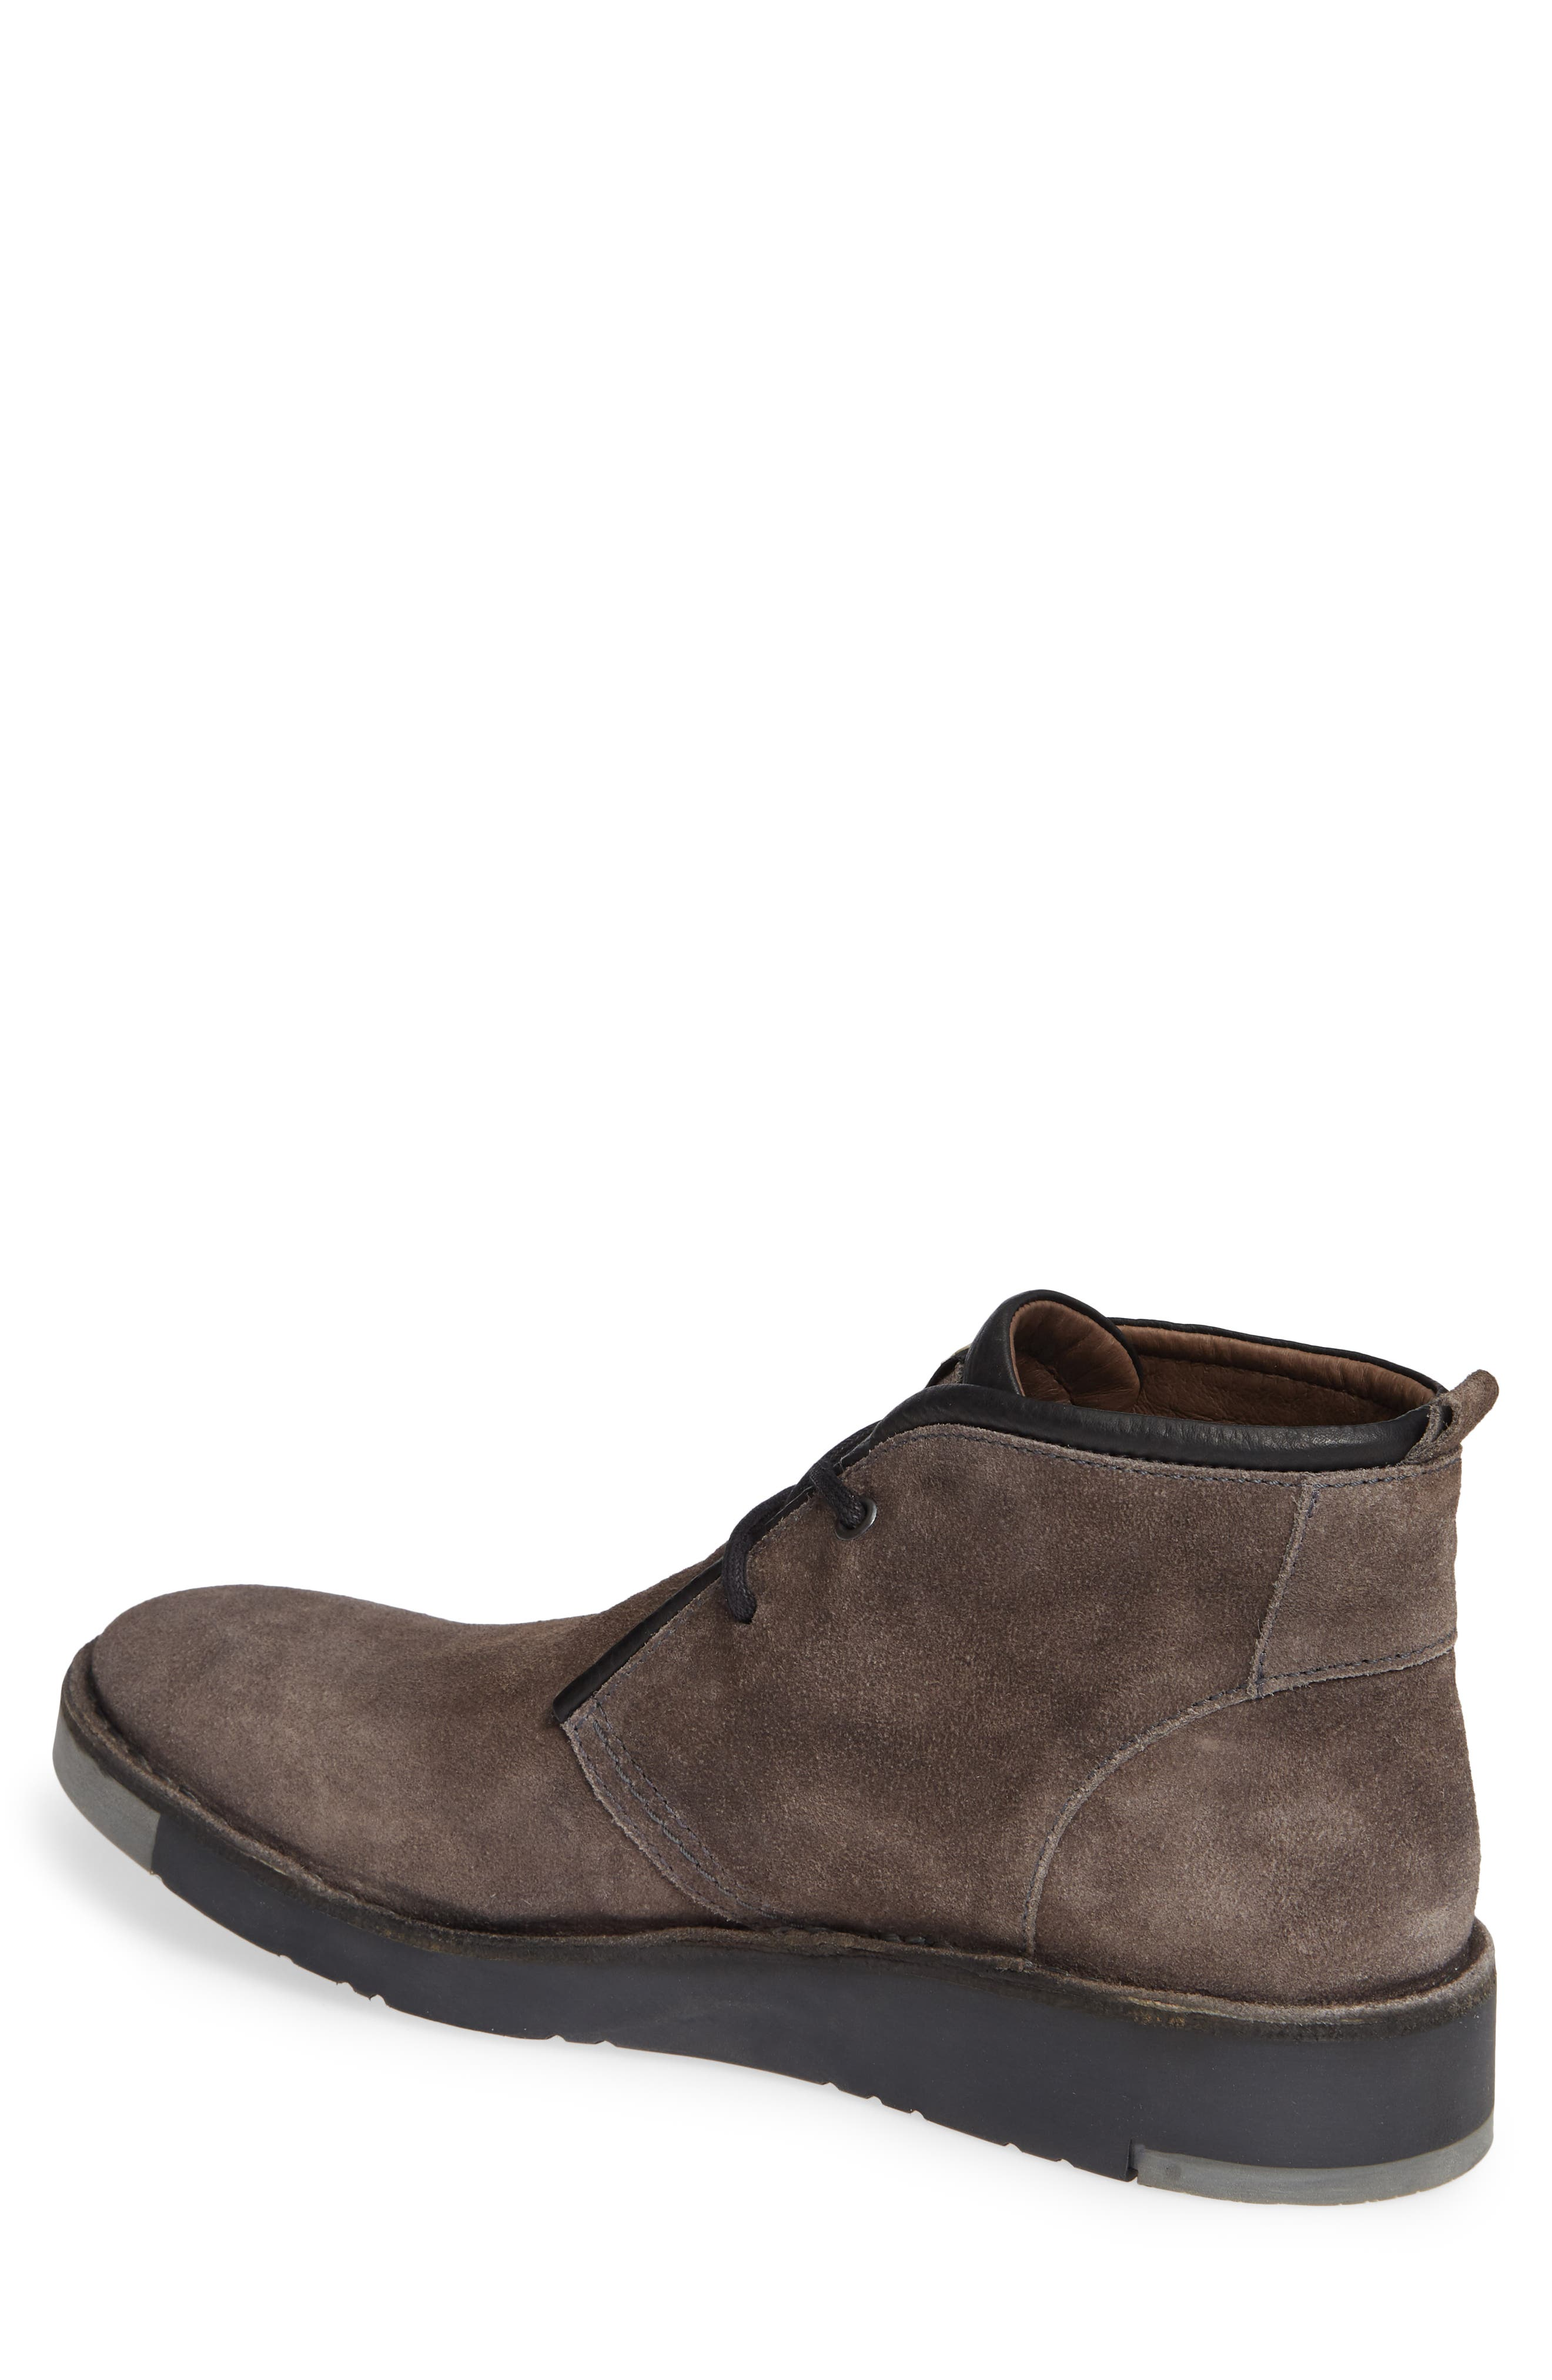 Sion Water Resistant Chukka Boot,                             Alternate thumbnail 2, color,                             GREY OIL SUEDE